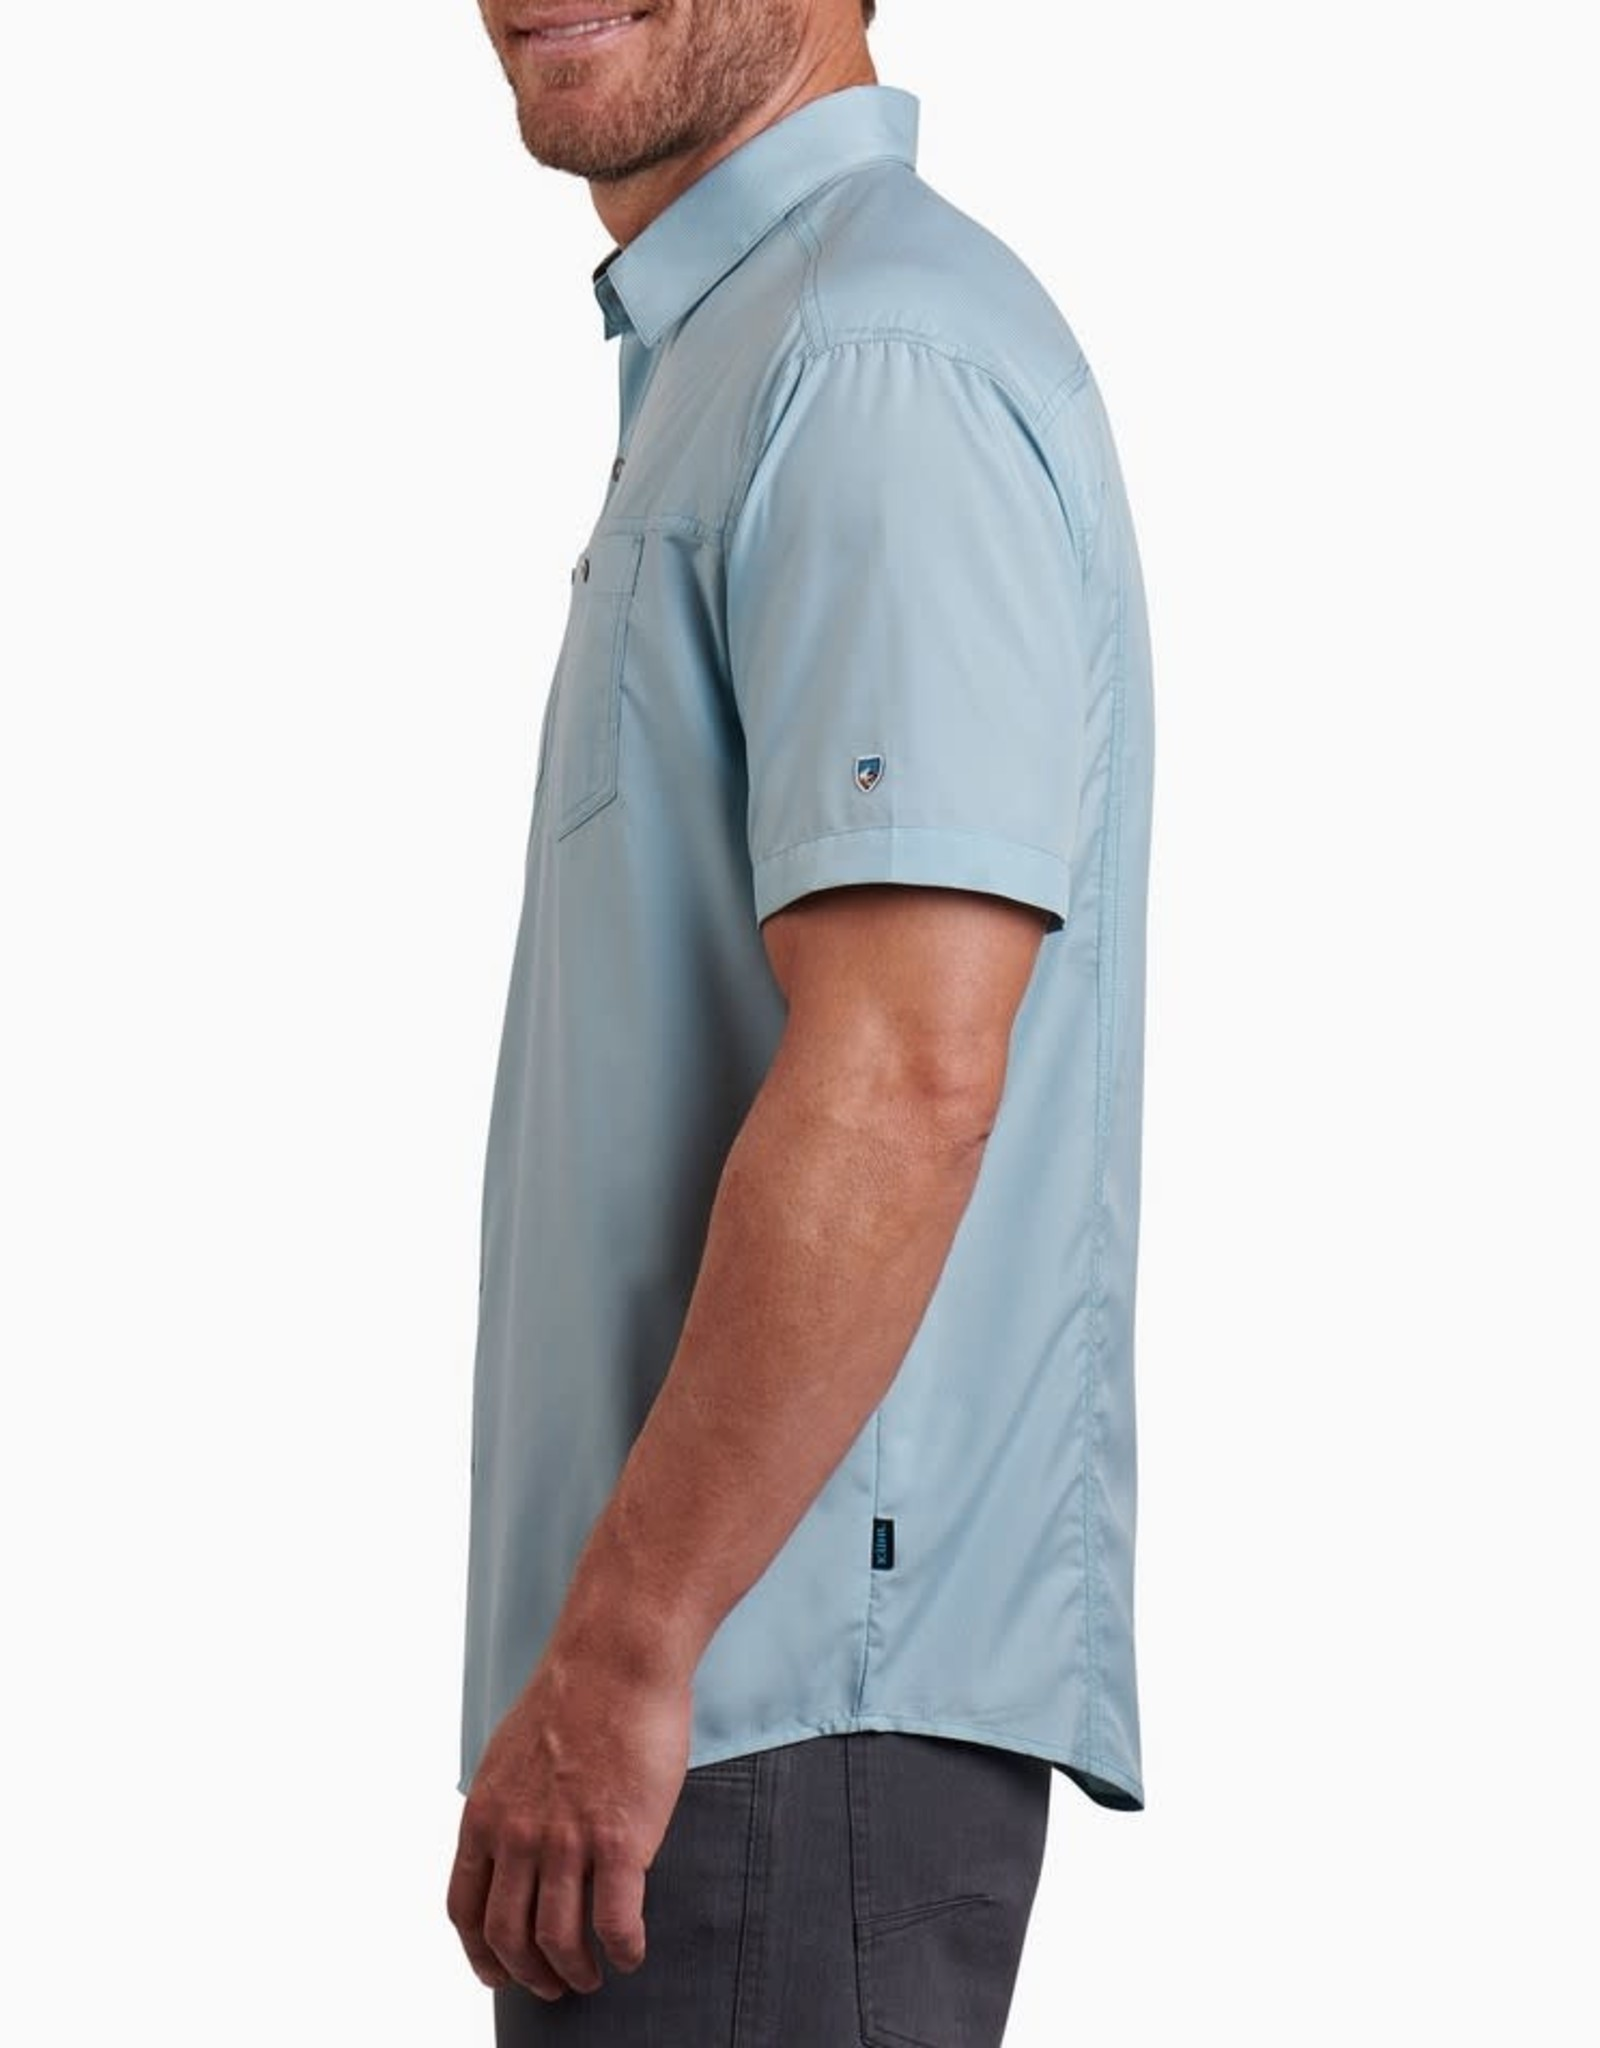 KÜHL Stealth short sleeve